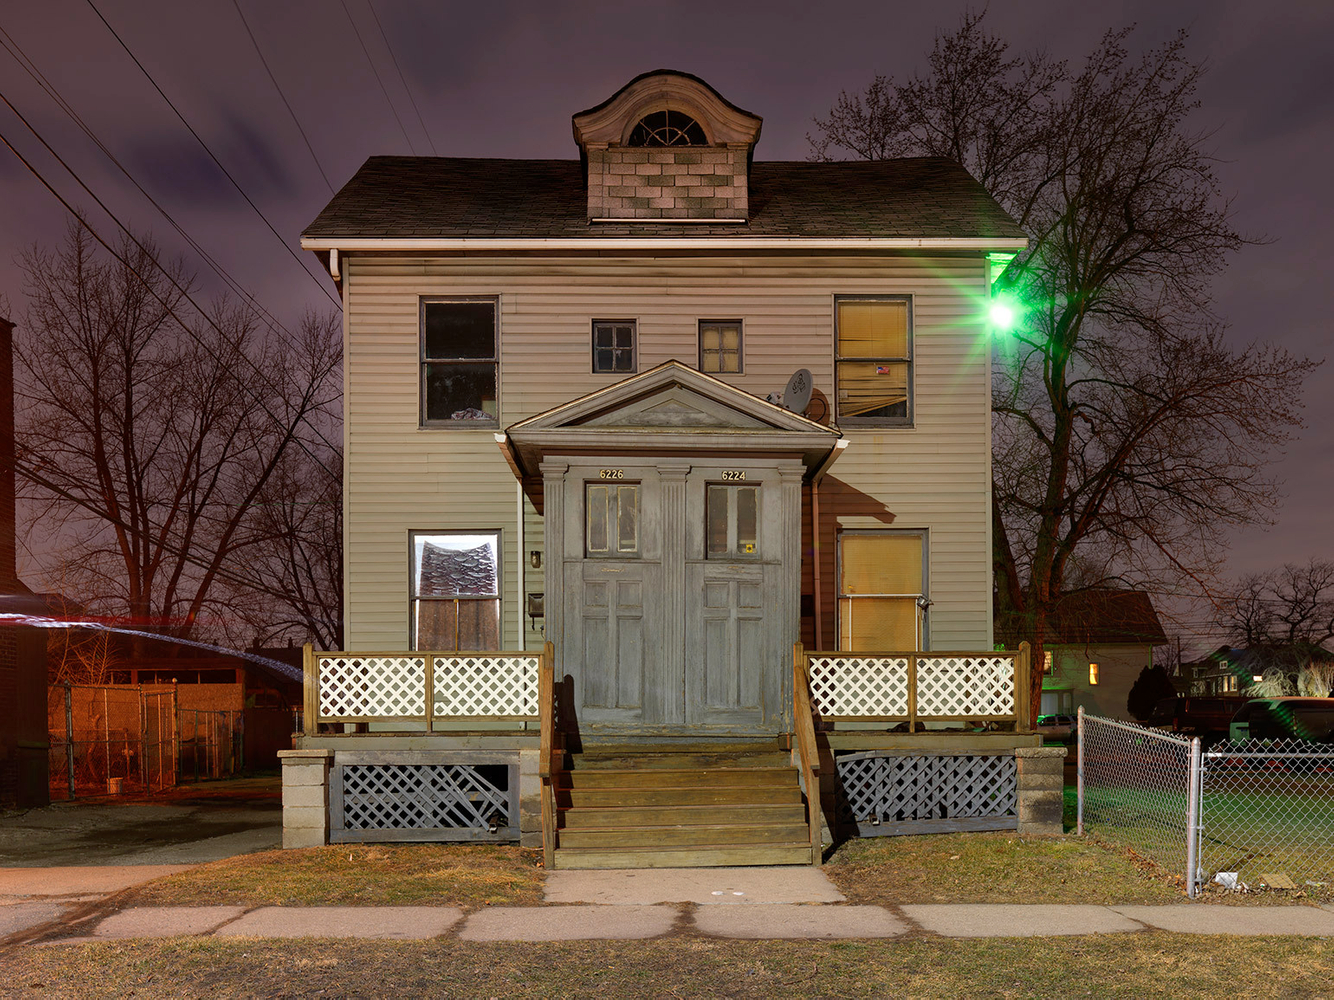 House with Classical Portico Entrance, Mexicantown, Detroit 2016